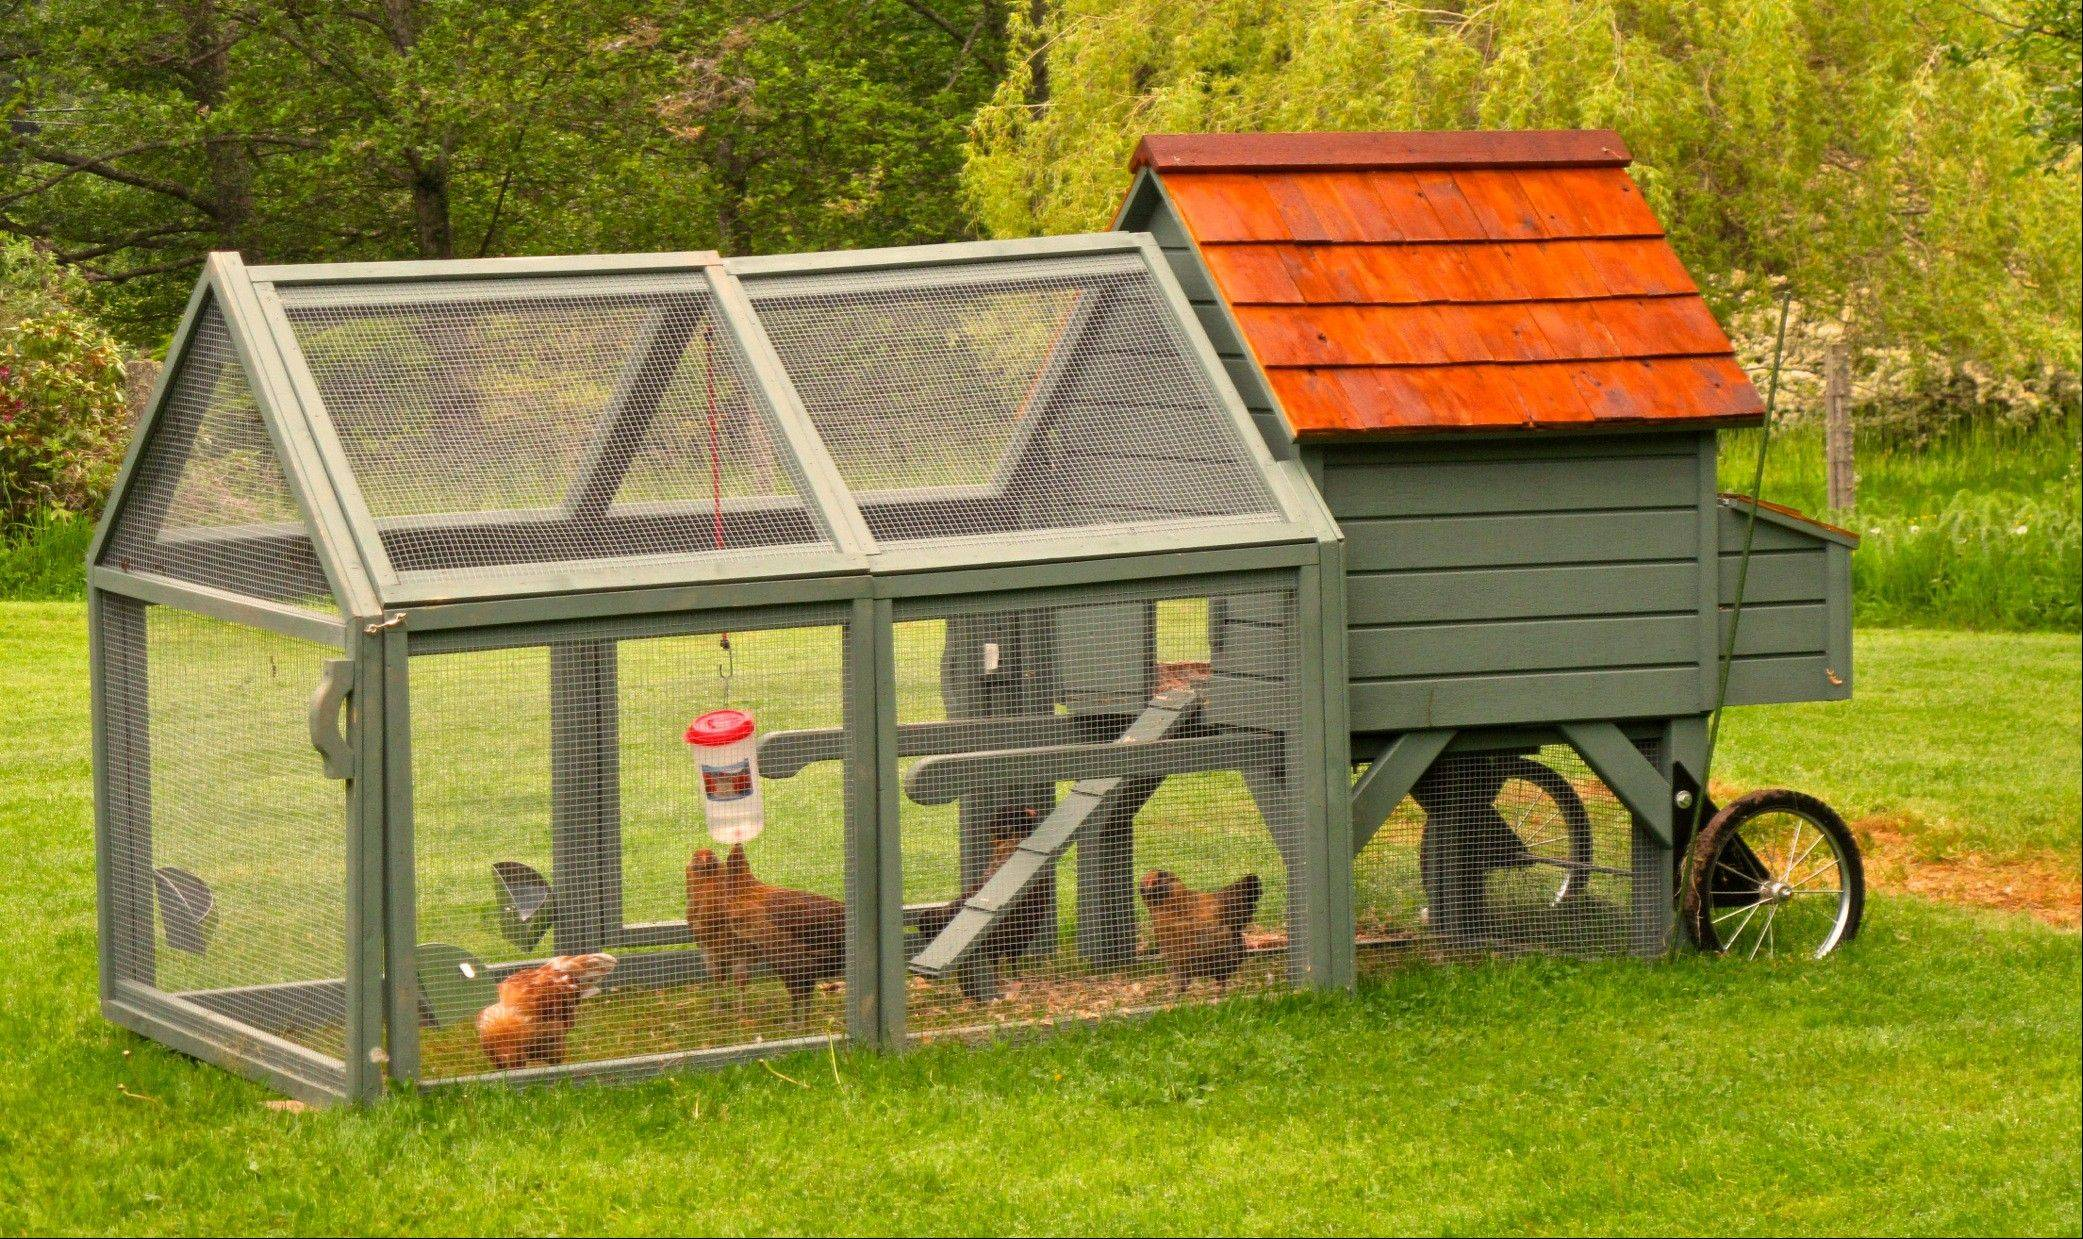 A movable chicken coop sold by Williams-Sonoma is built on wheels, which makes it easy to maneuver around a lawn providing fresh grass for the small, foraging flock.